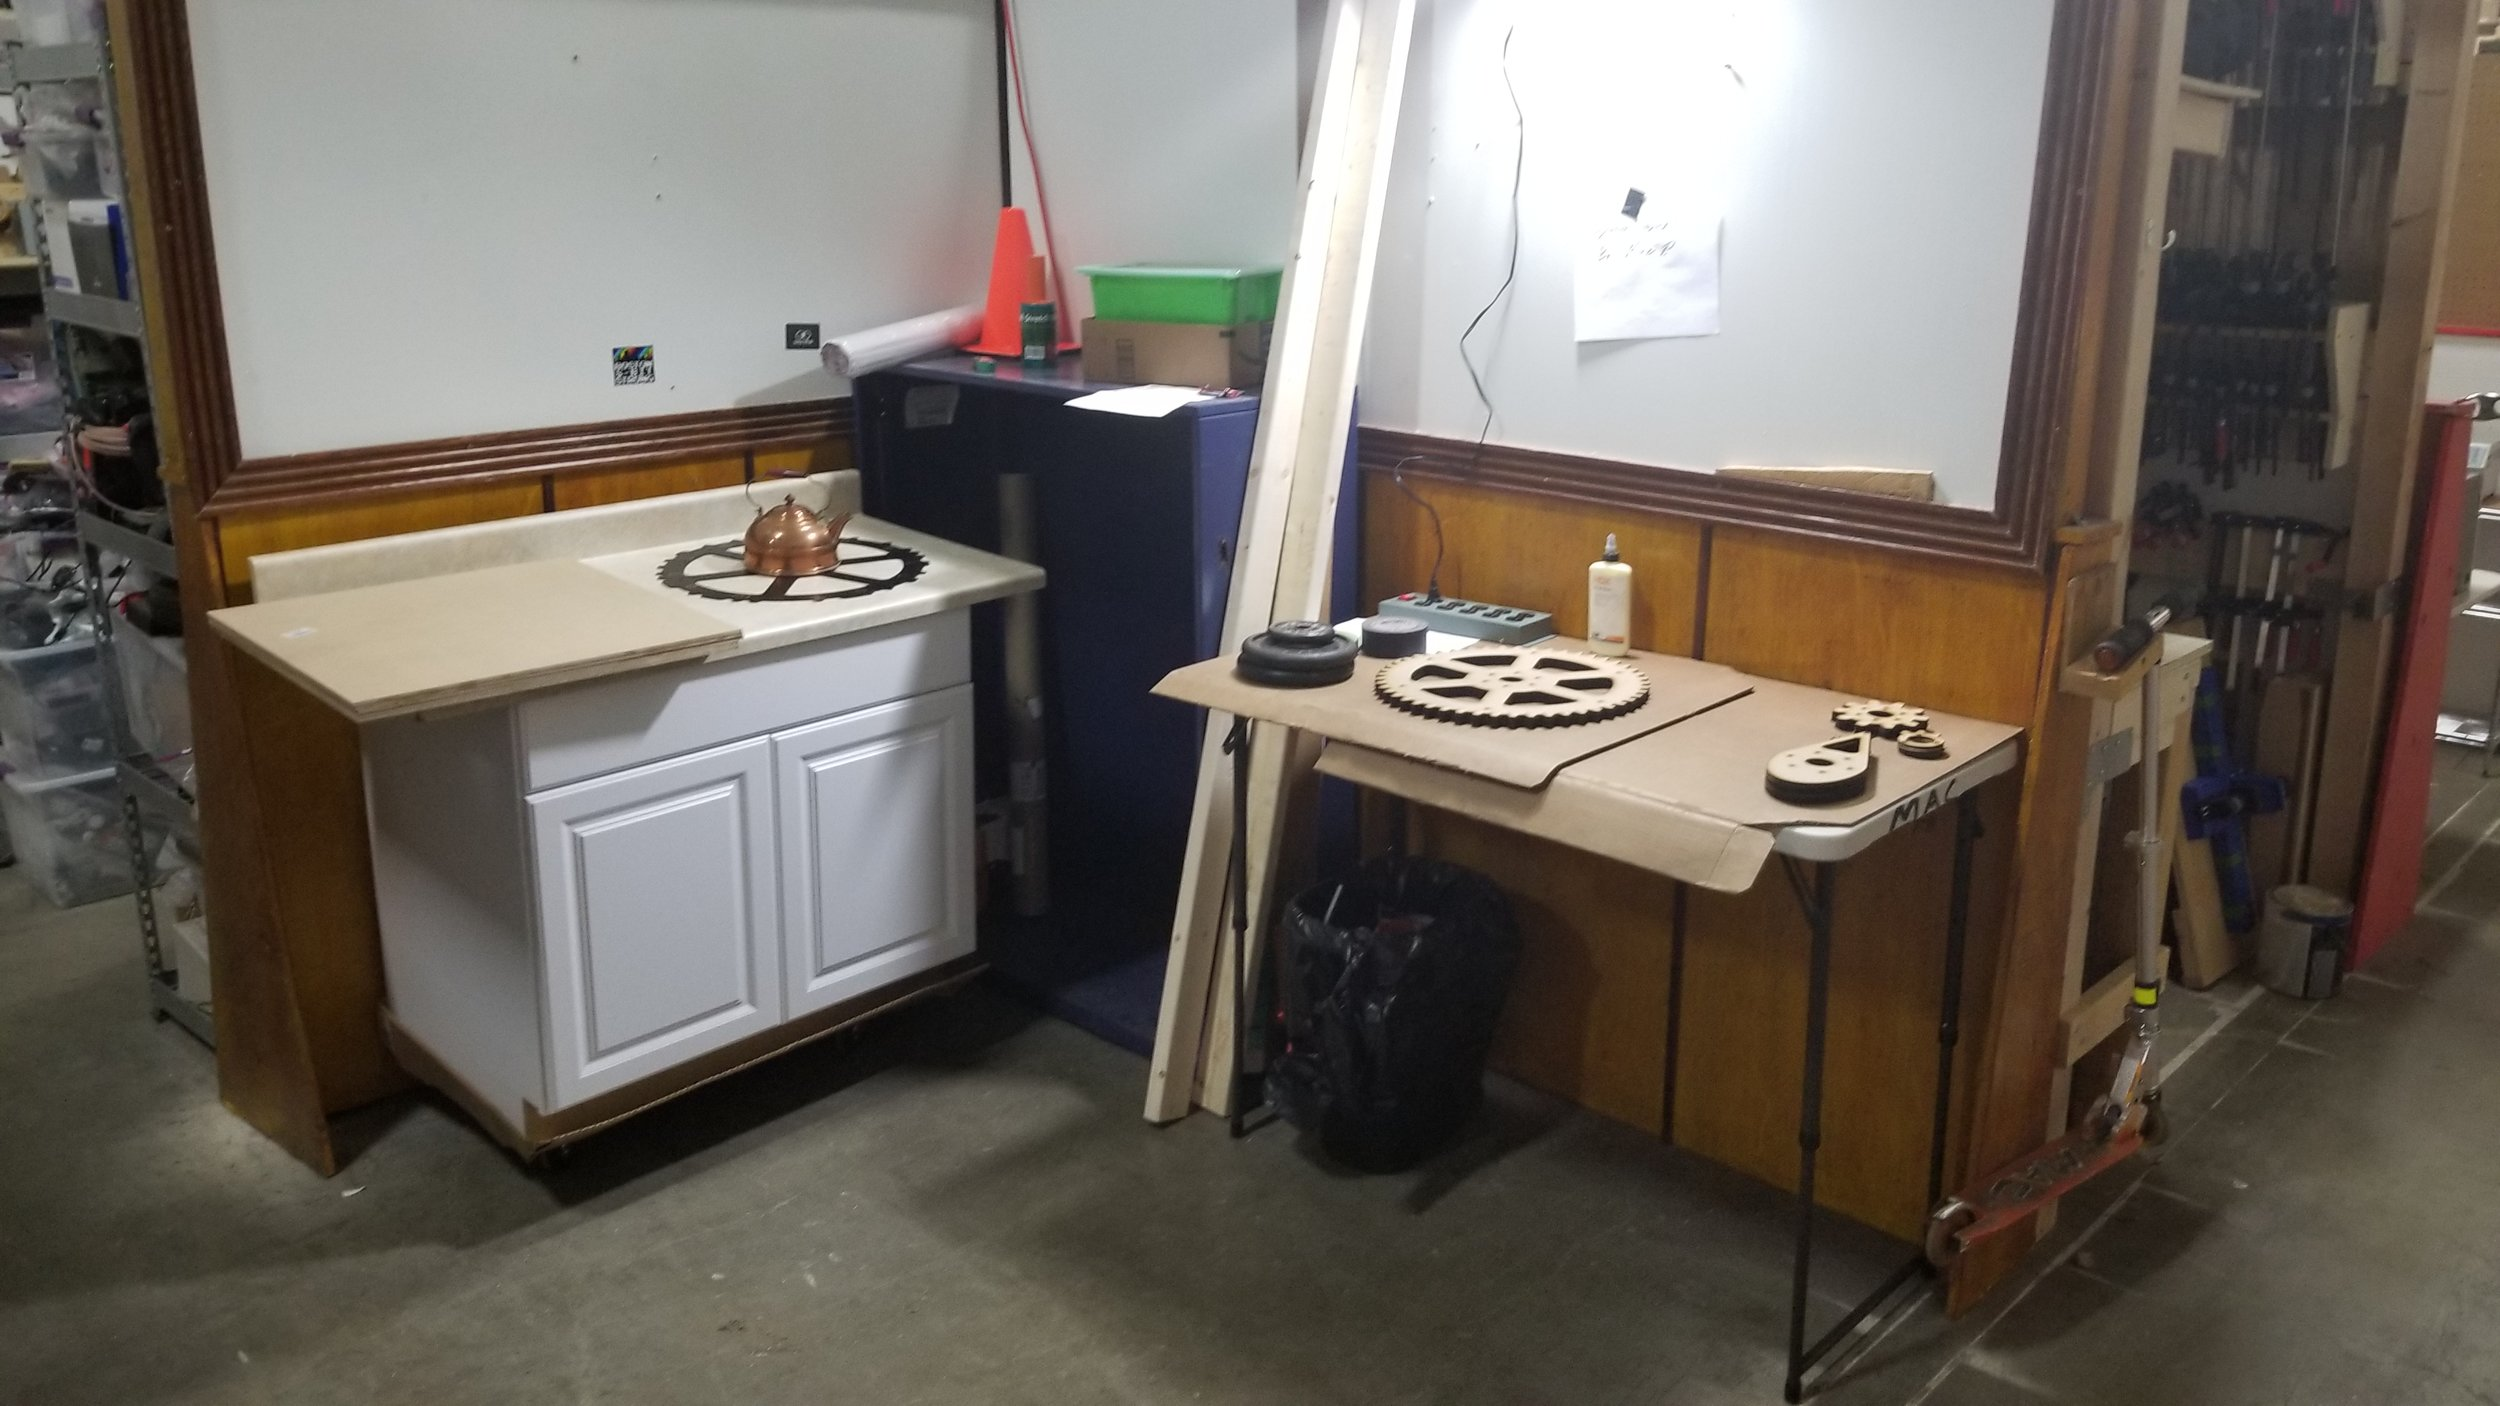 A flex space for the Kitchen Sink